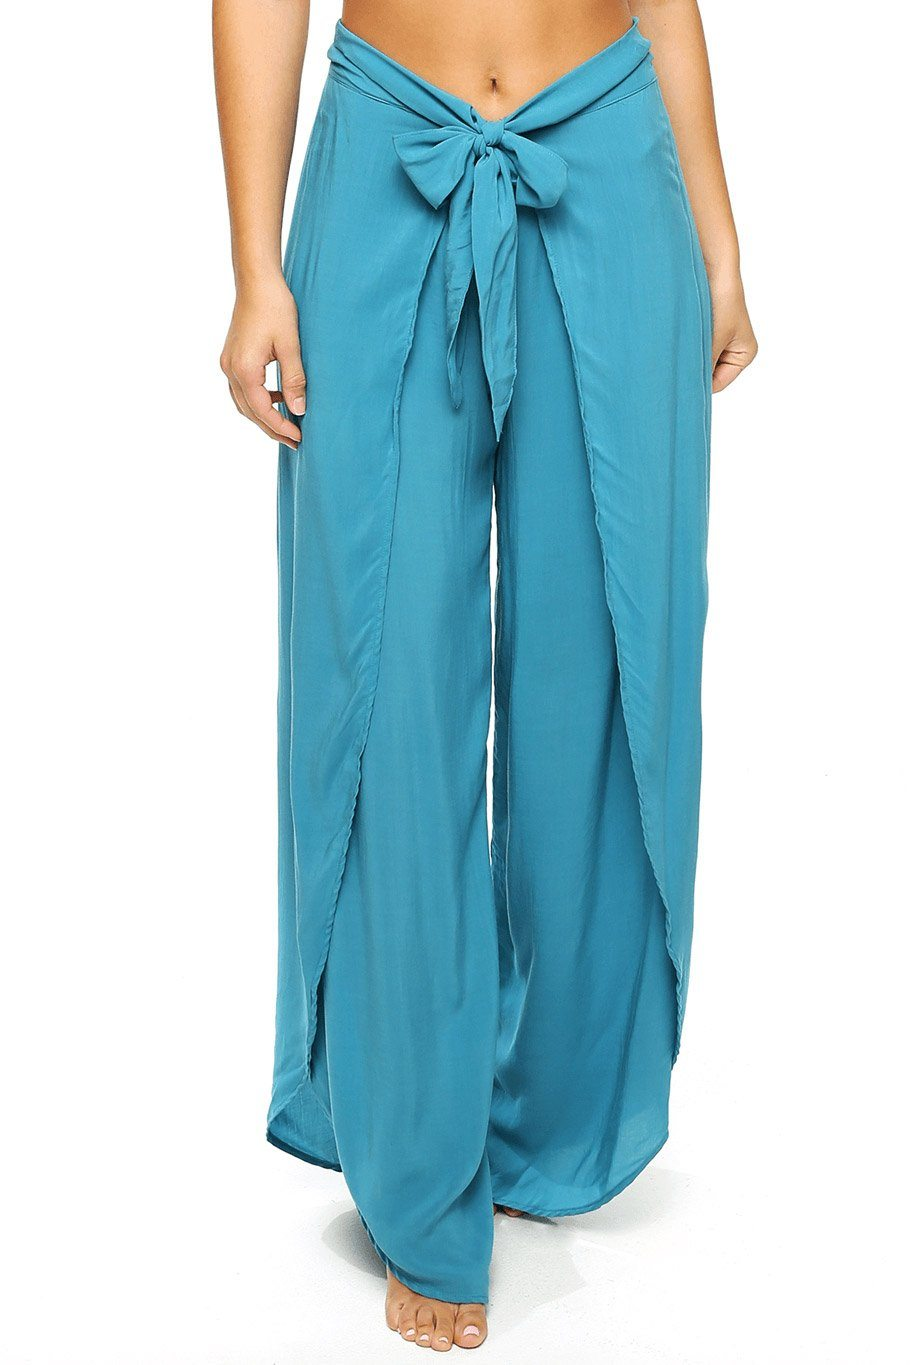 Bella Beach Pant - Teal - Shore